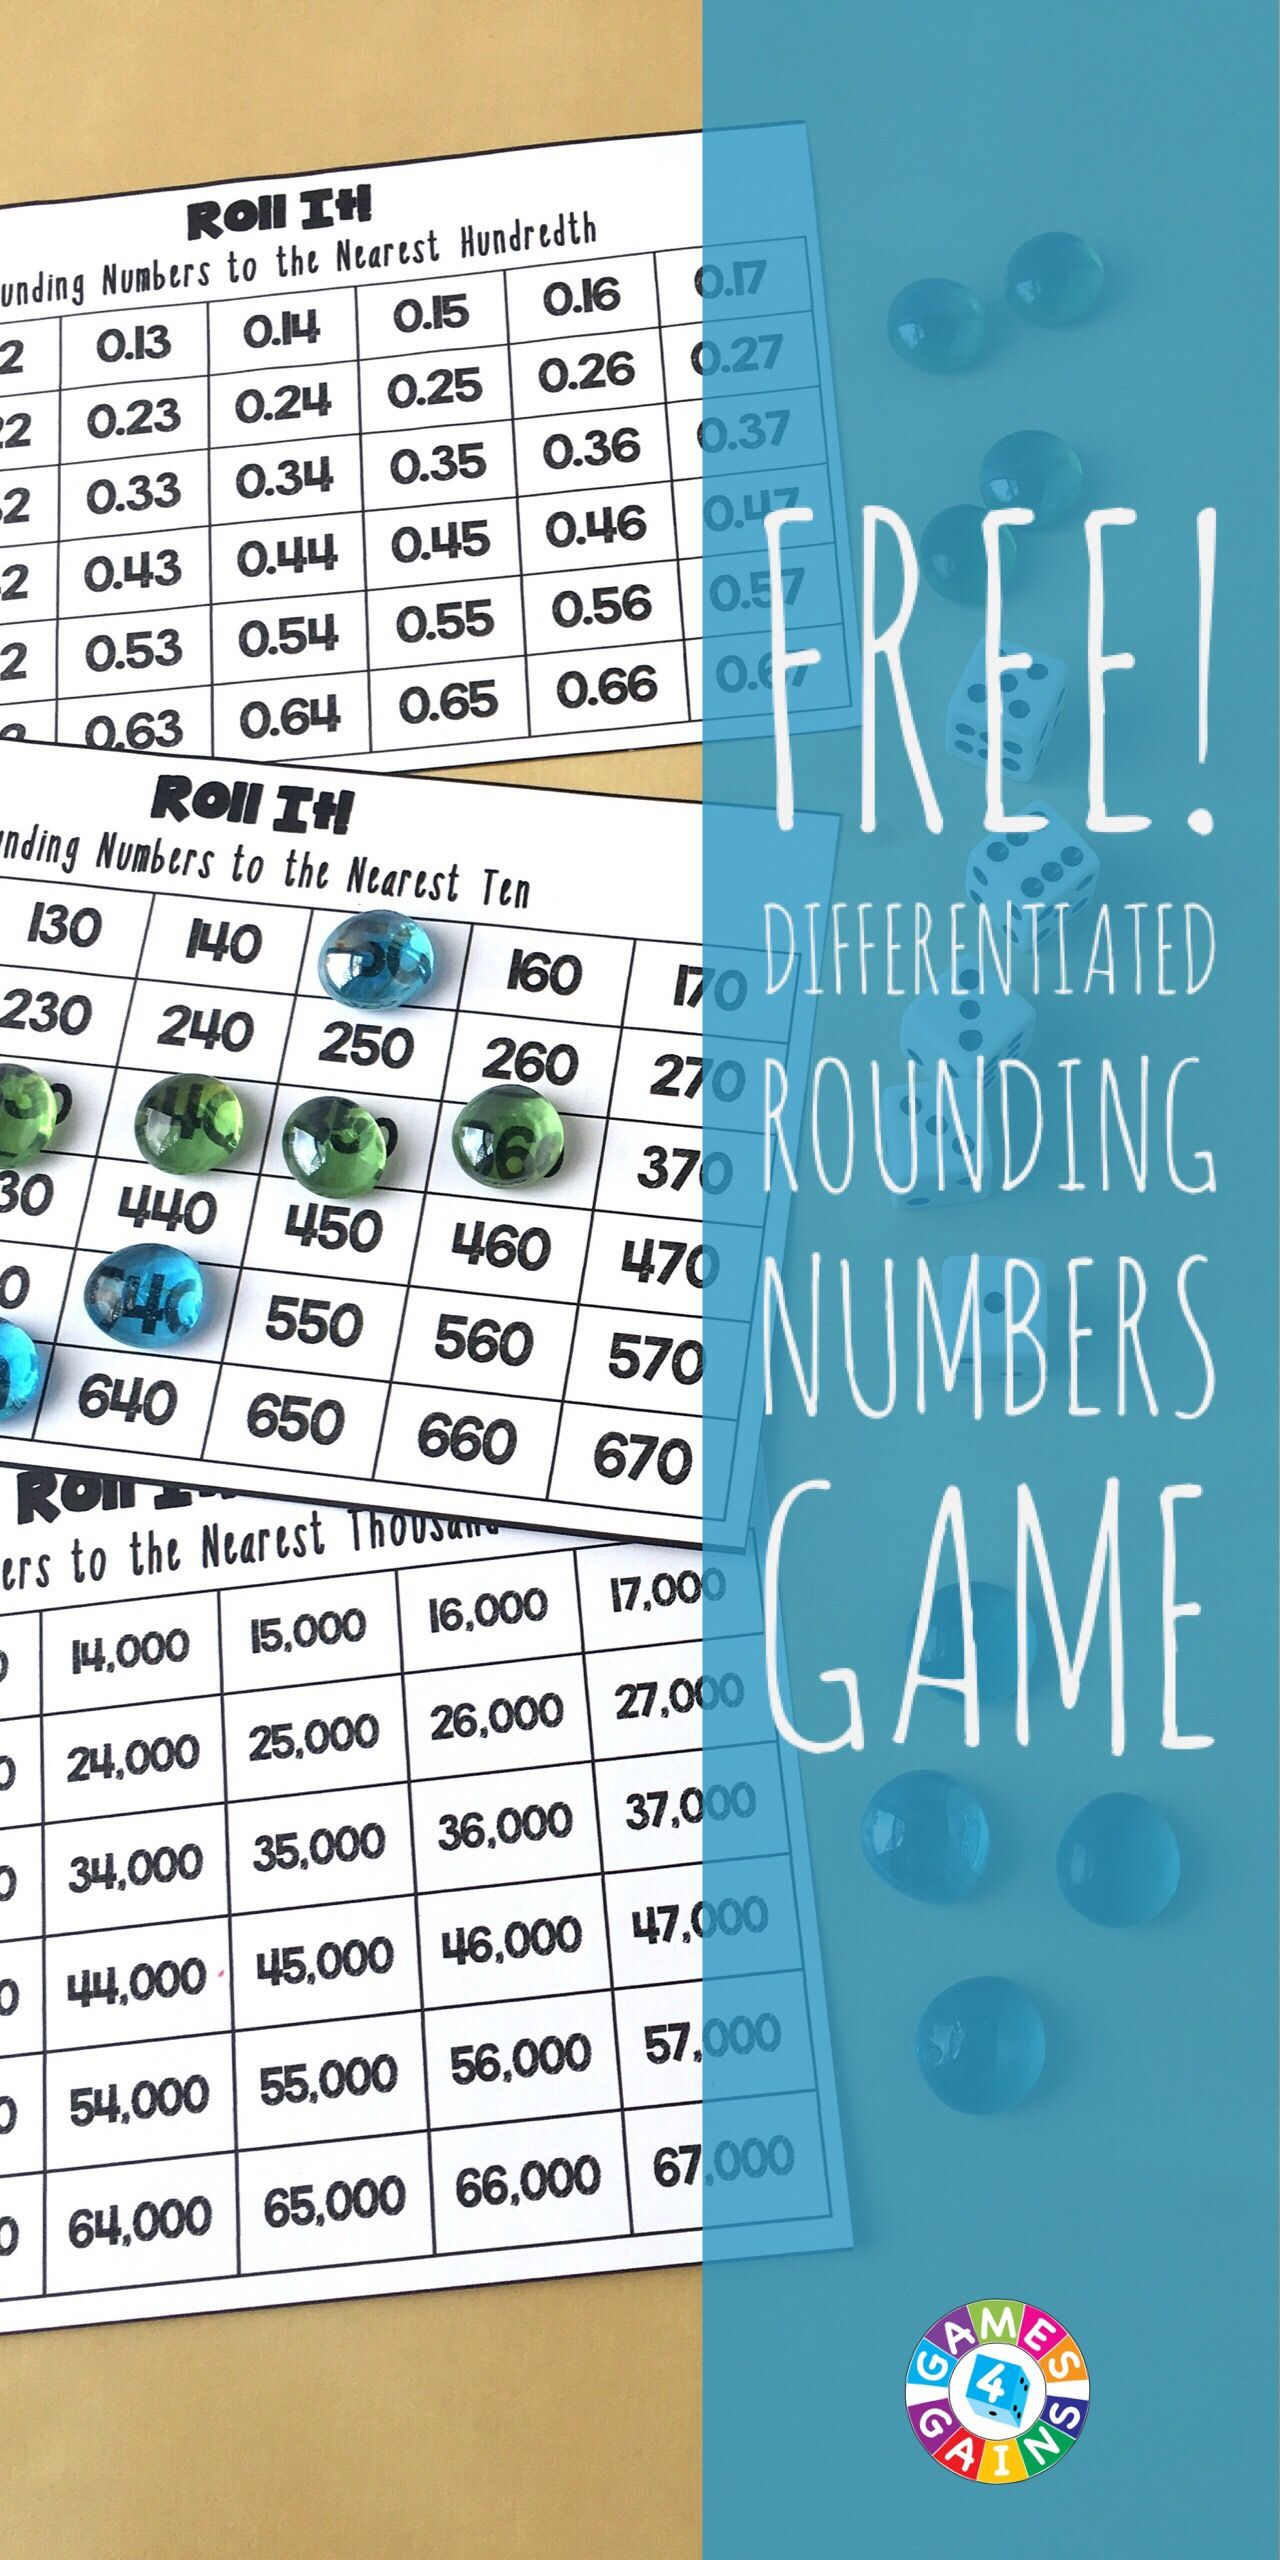 Roll It! Rounding Game | Rounding games, Rounding decimals and Game ...